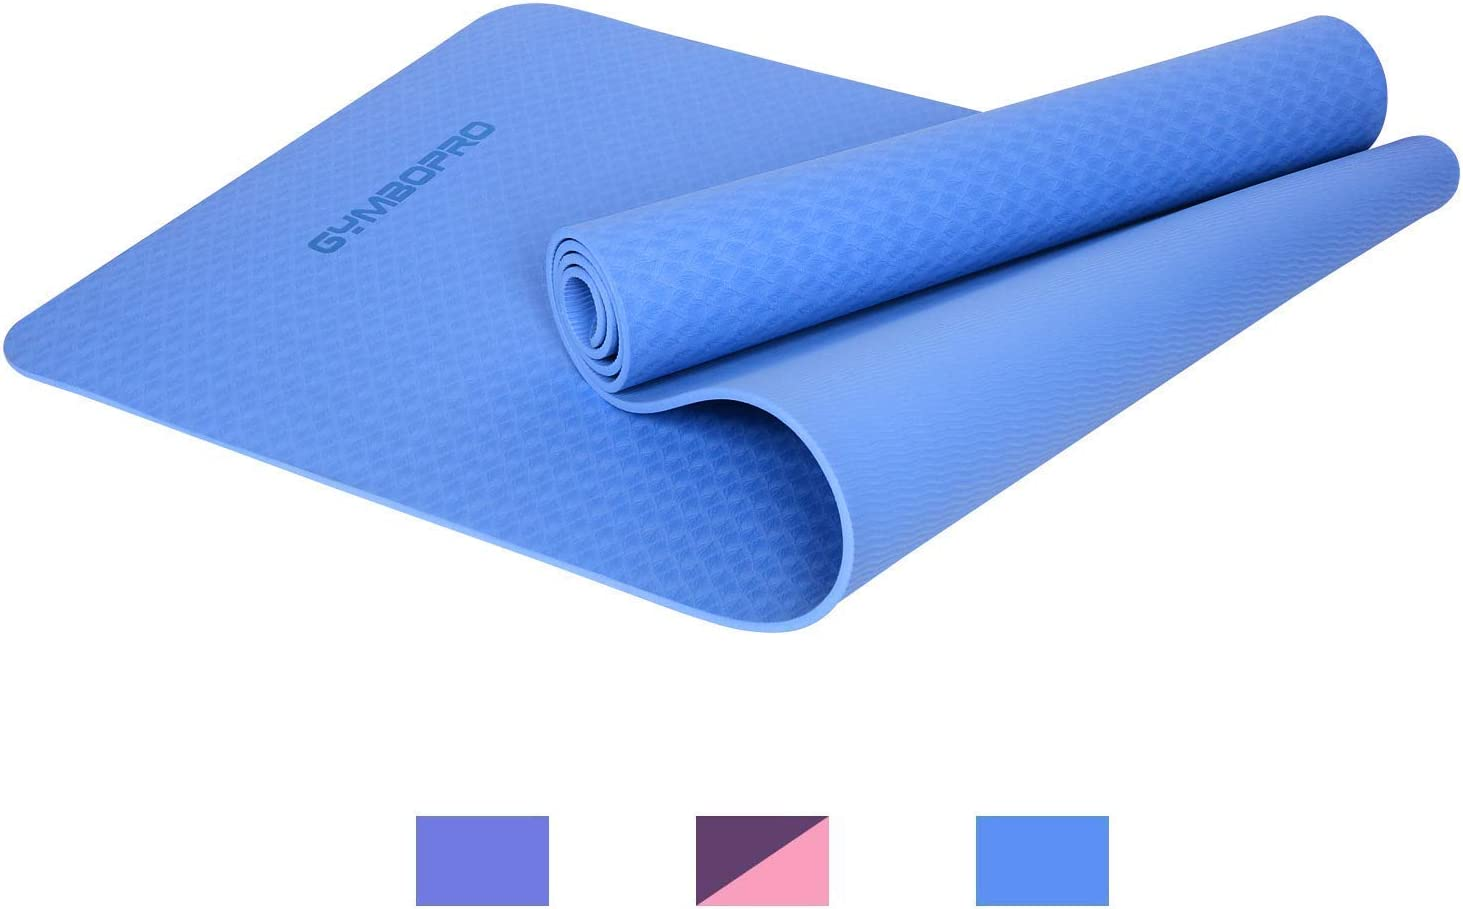 GYMBOPRO Yoga Mat Premium Quality 6mm Thick High Density Eco Friendly Anti-Slip TPE Exercise Mat for Yoga, Pilates,Fitness & Workout